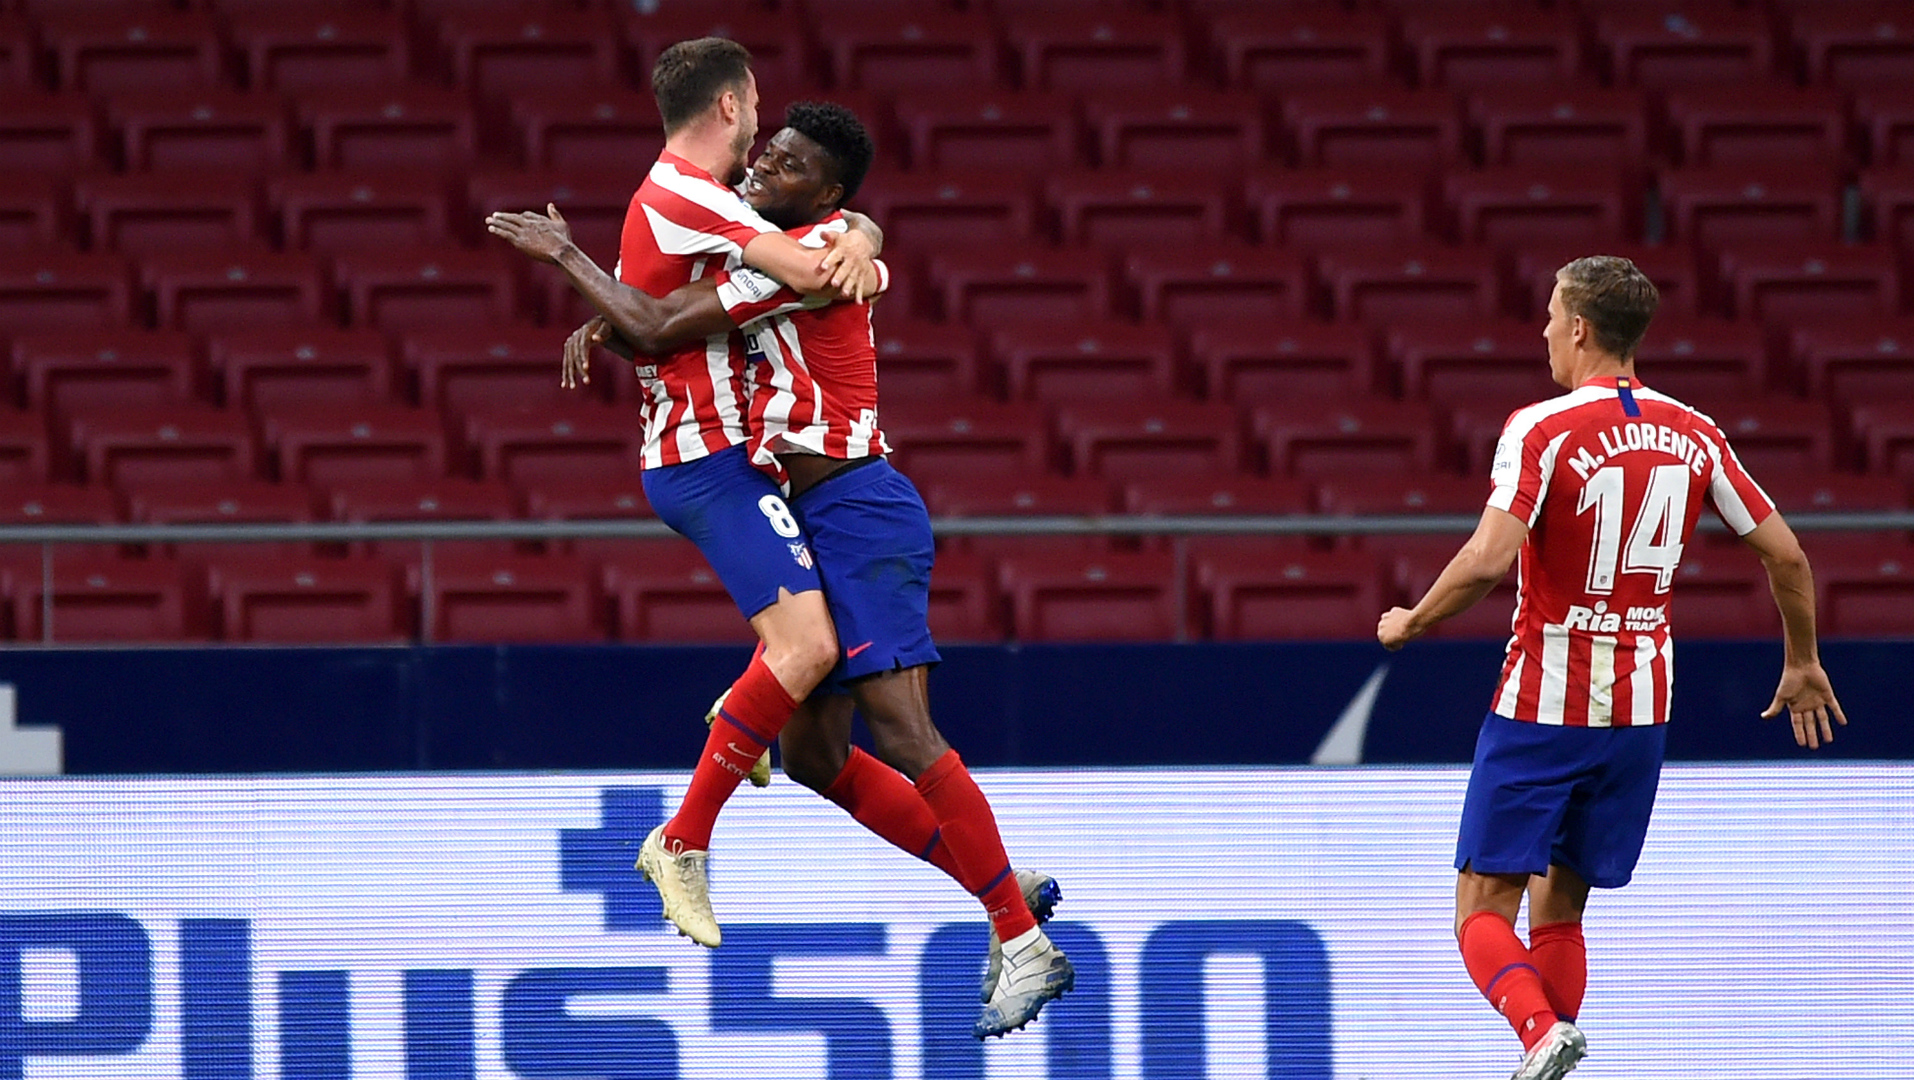 Atletico Madrid 2-1 Deportivo Alaves: Saul & Costa strengthen grip on third